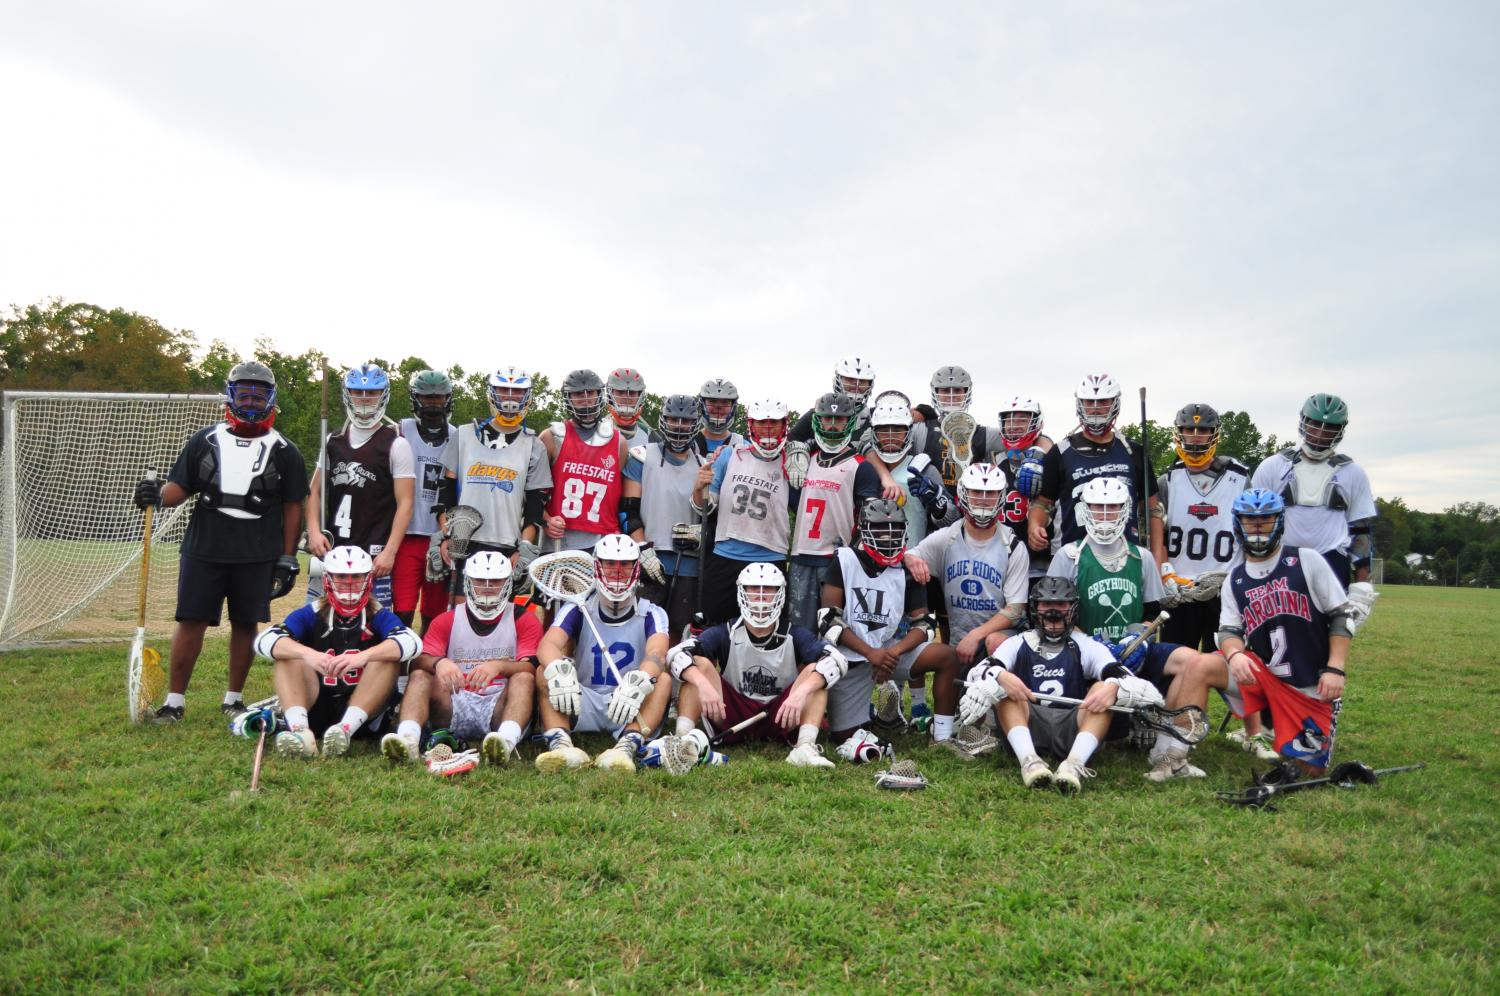 Men's Lacrosse players pose after a fall ball practice session, months before their regular season.